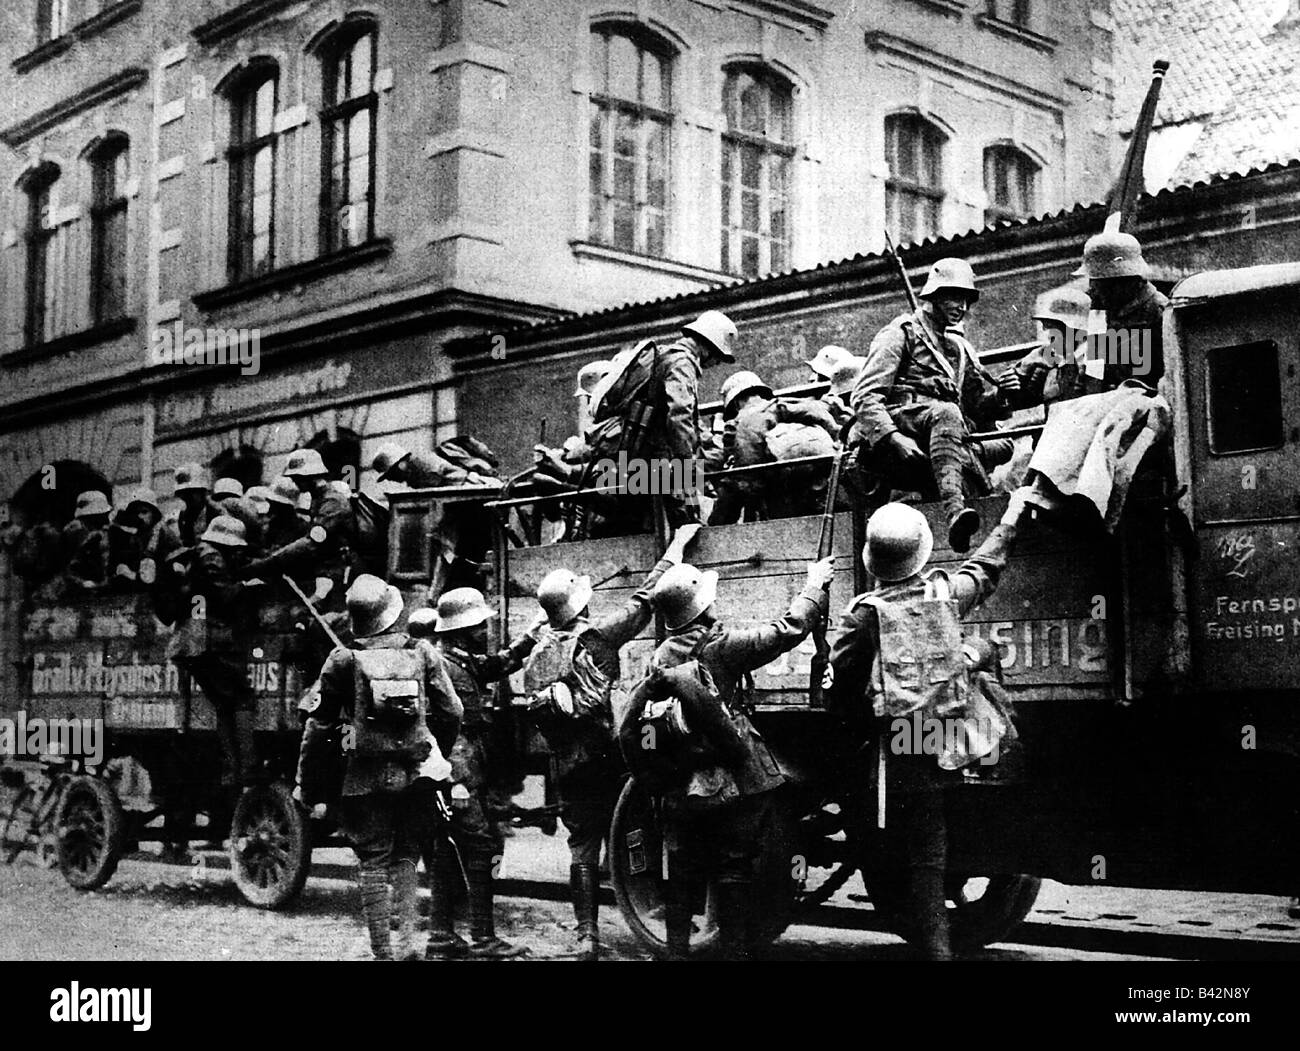 events, Beer Hall Putsch, 1923, rebells, men of SA (Storm Division/Sturmabteilung), getting on a lorry, Munich, - Stock Image